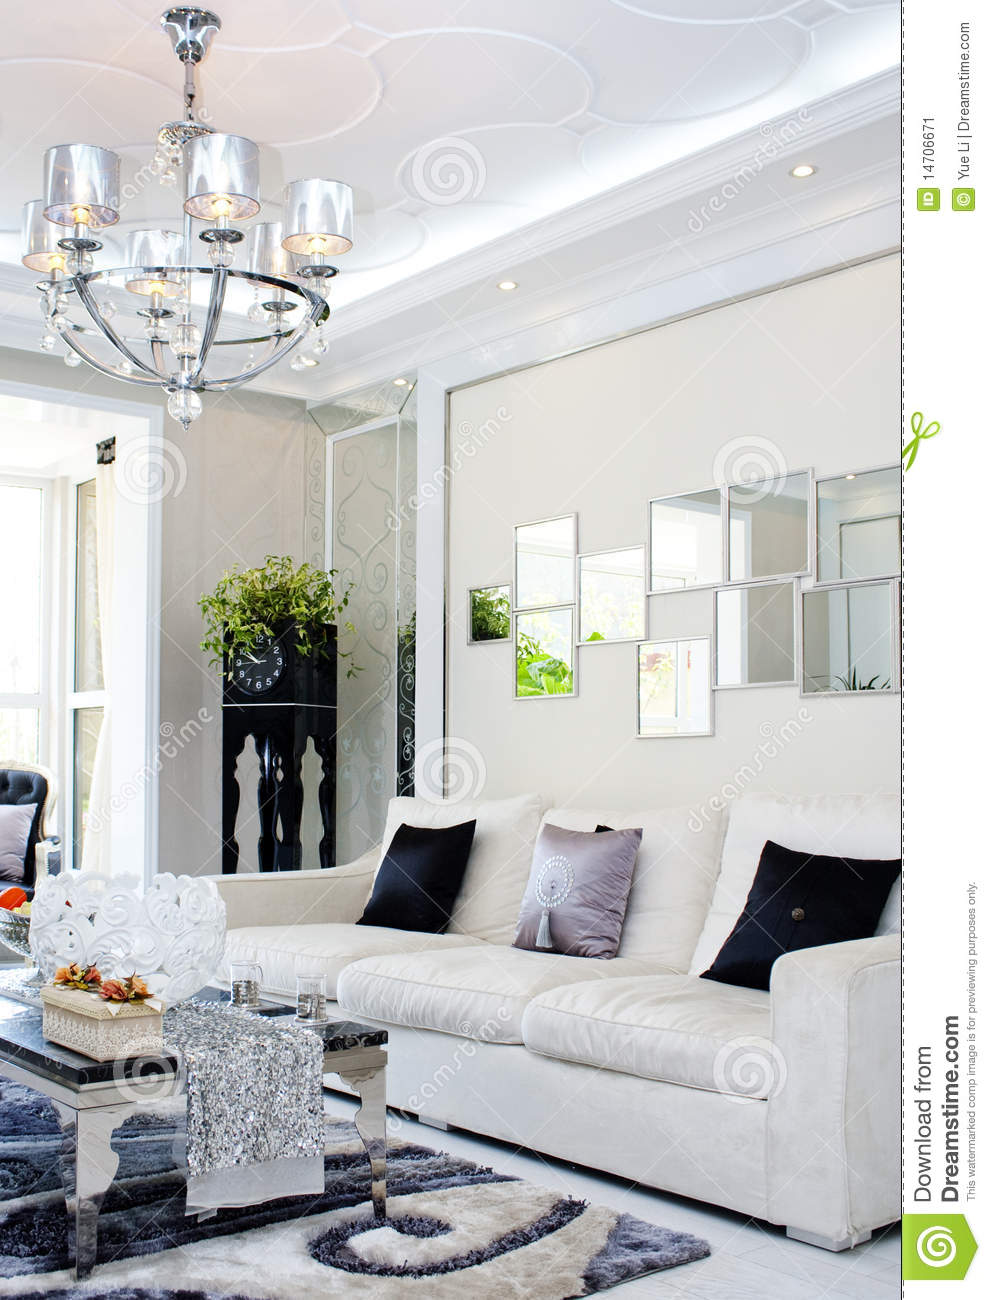 Nice home stock image image of home design lifestyle for Nice home photos